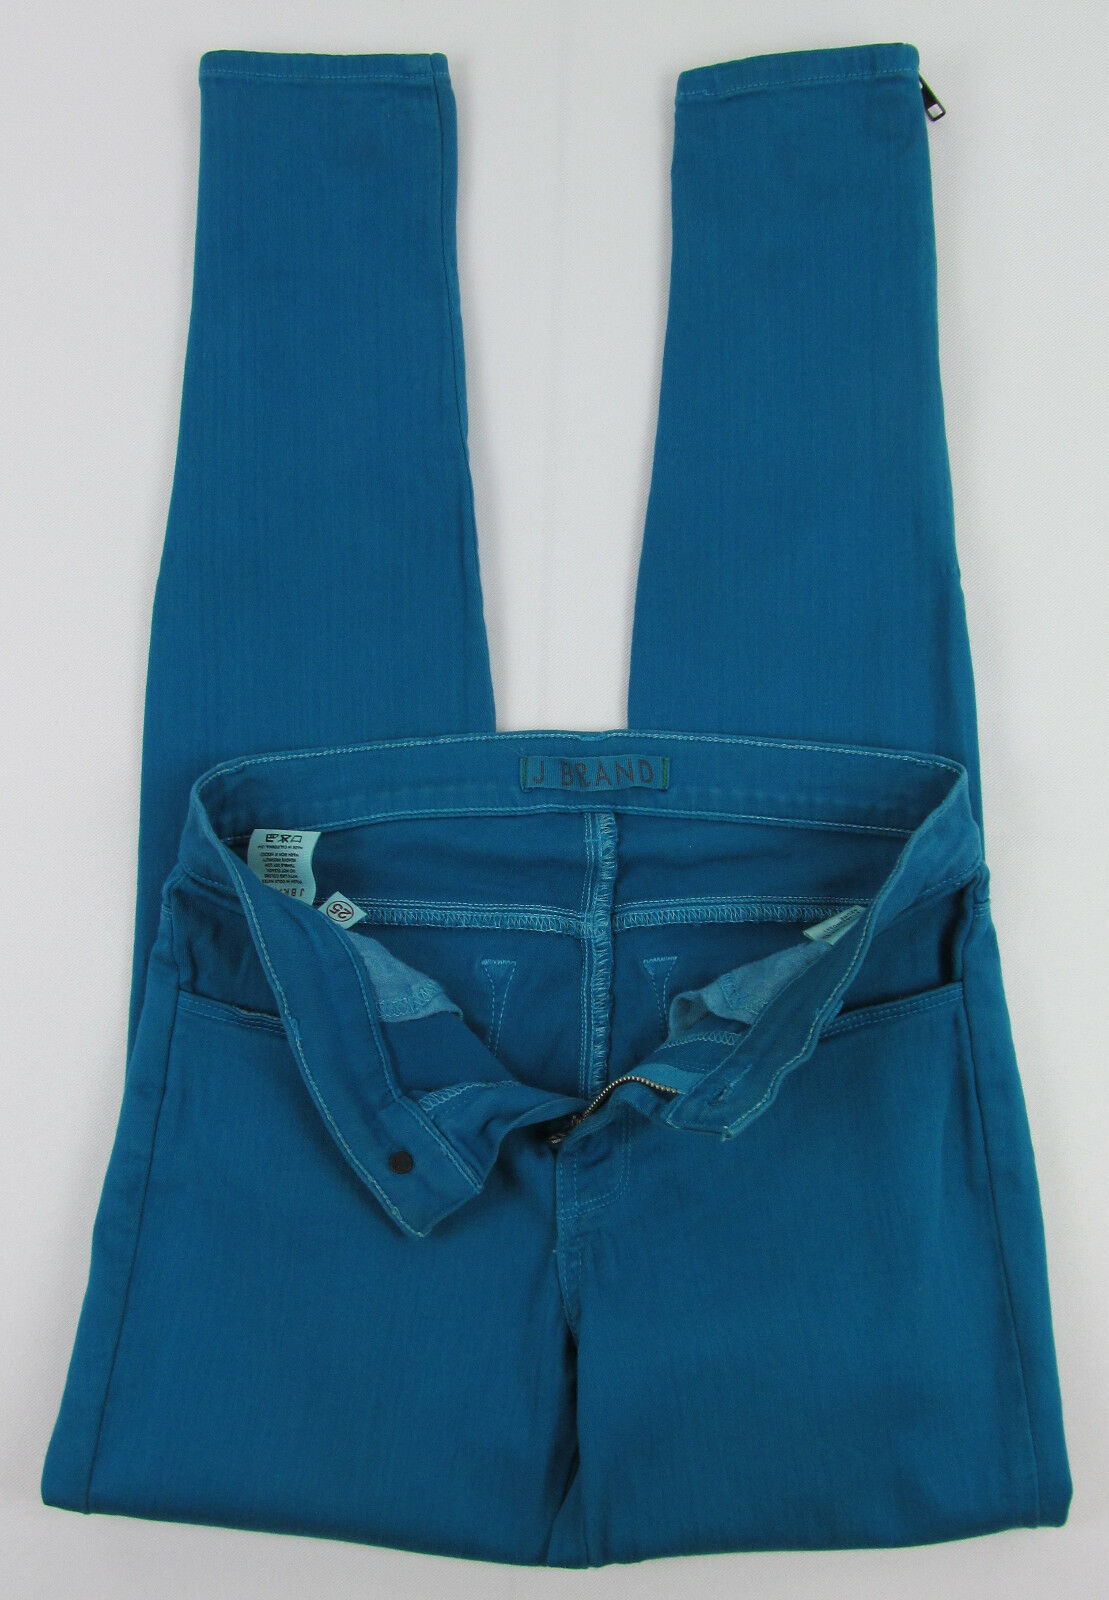 J Brand jeans Azure Ankle Skinny Zipper cuffs USA Made Teal Womens Size 25 image 5